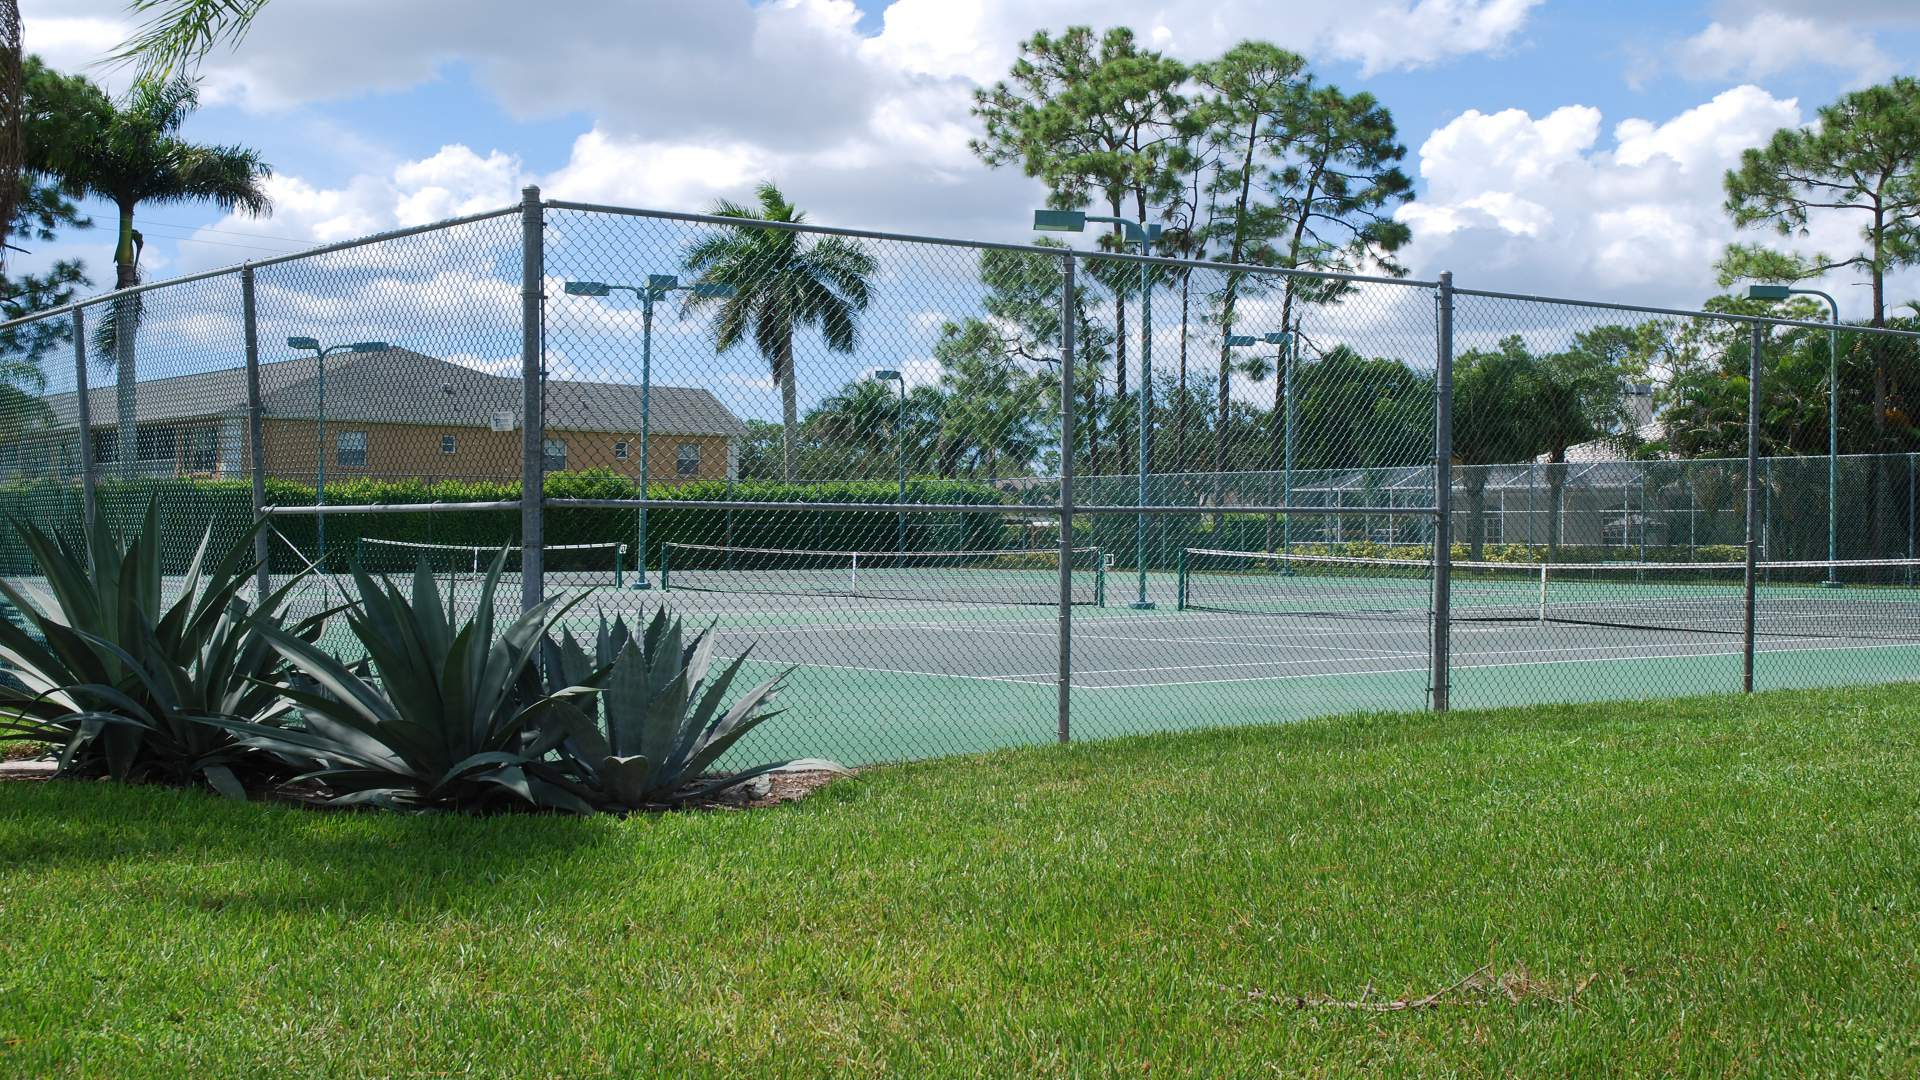 no charge fo to play on this tennis courts for owners and renters of the community